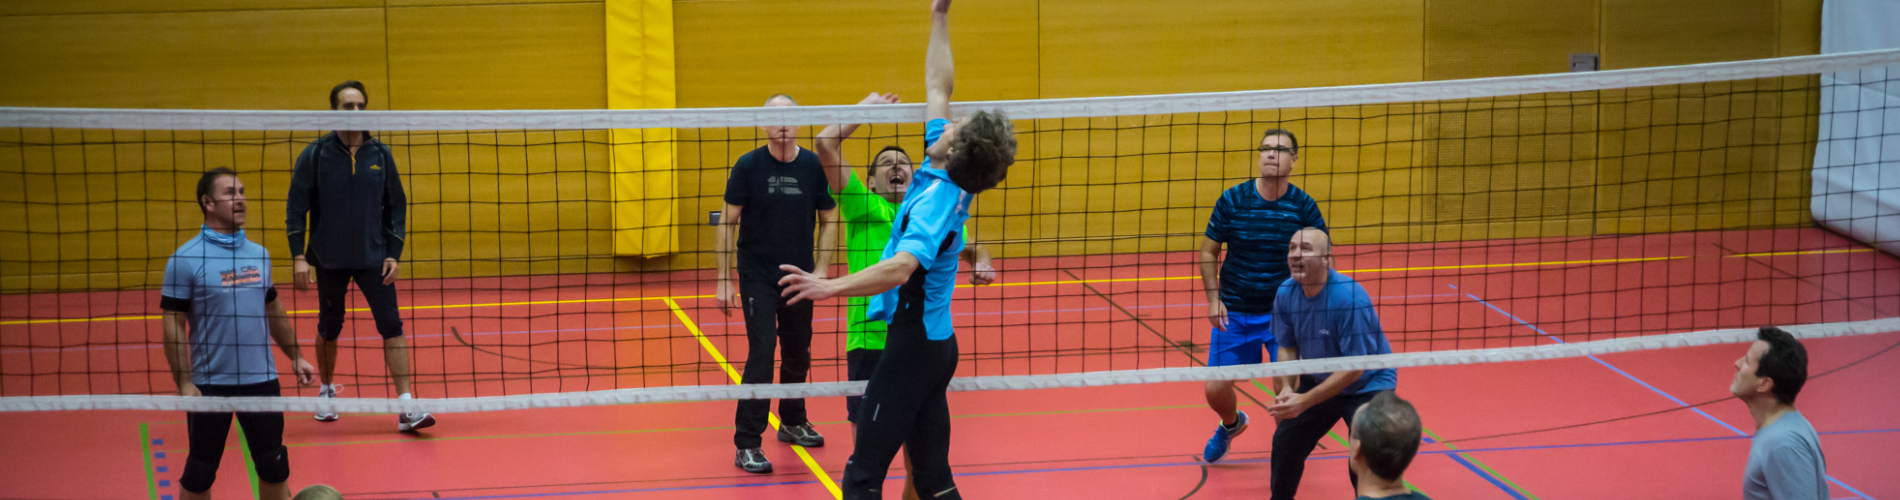 slider_skigymnastik_volleyball